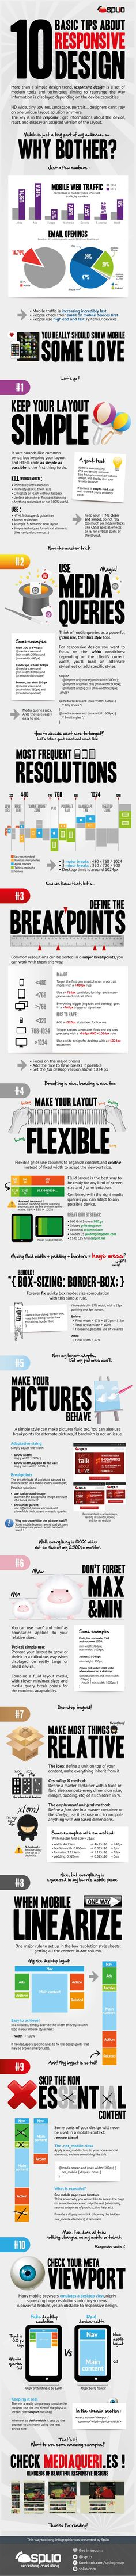 10 Basic Tips About Responsive Design - Infographic | Web Design blog, Design Inspiration - Downgraf